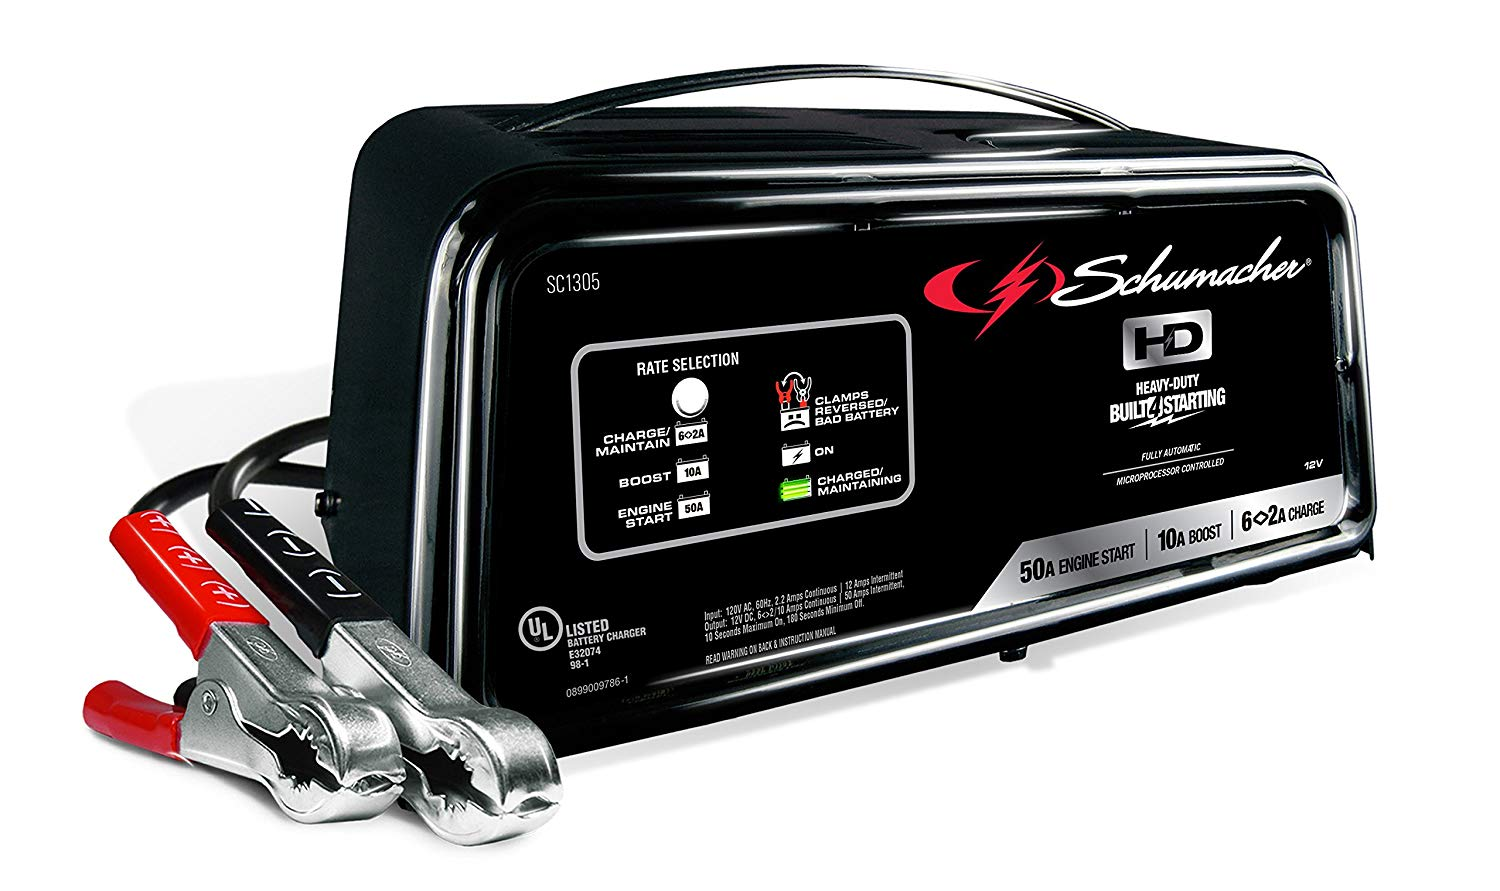 Schumacher SC1305 Automatic Battery Charger